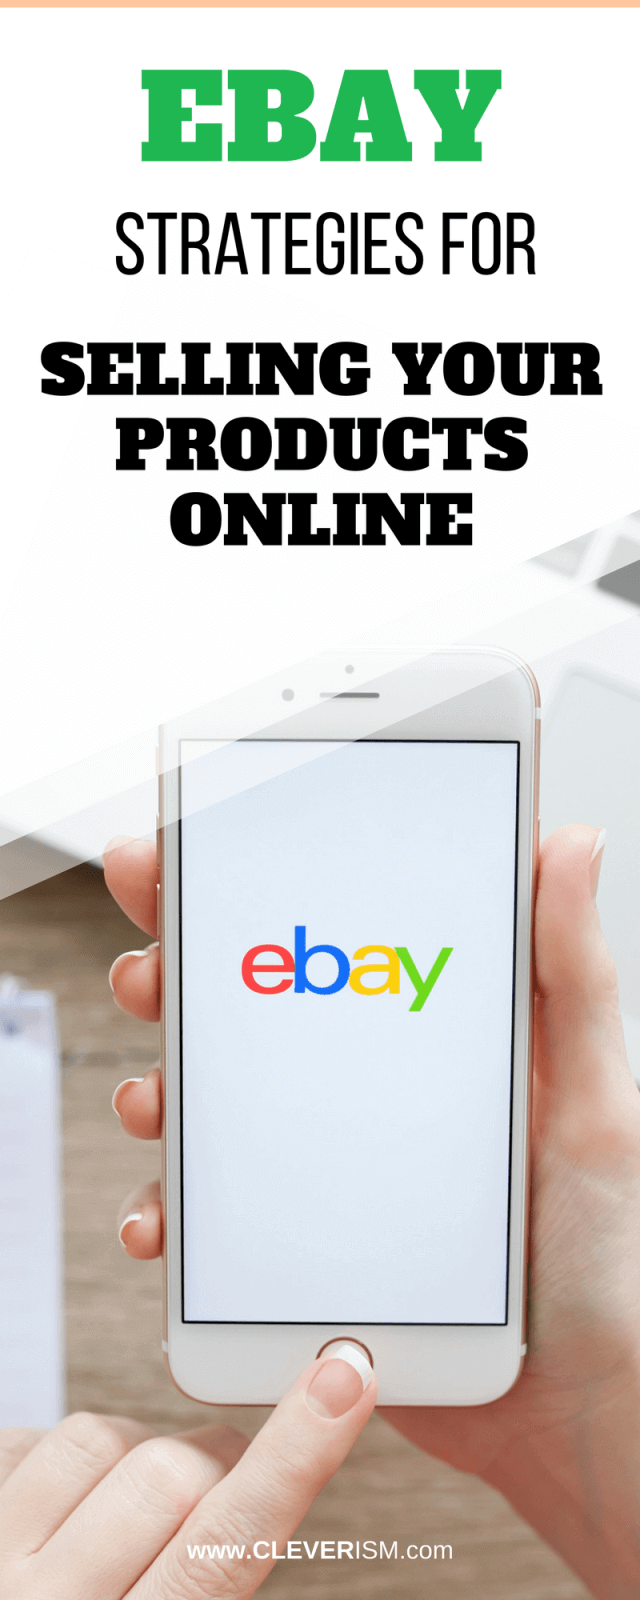 Ebay Strategies For Selling Your Products Online Cleverism